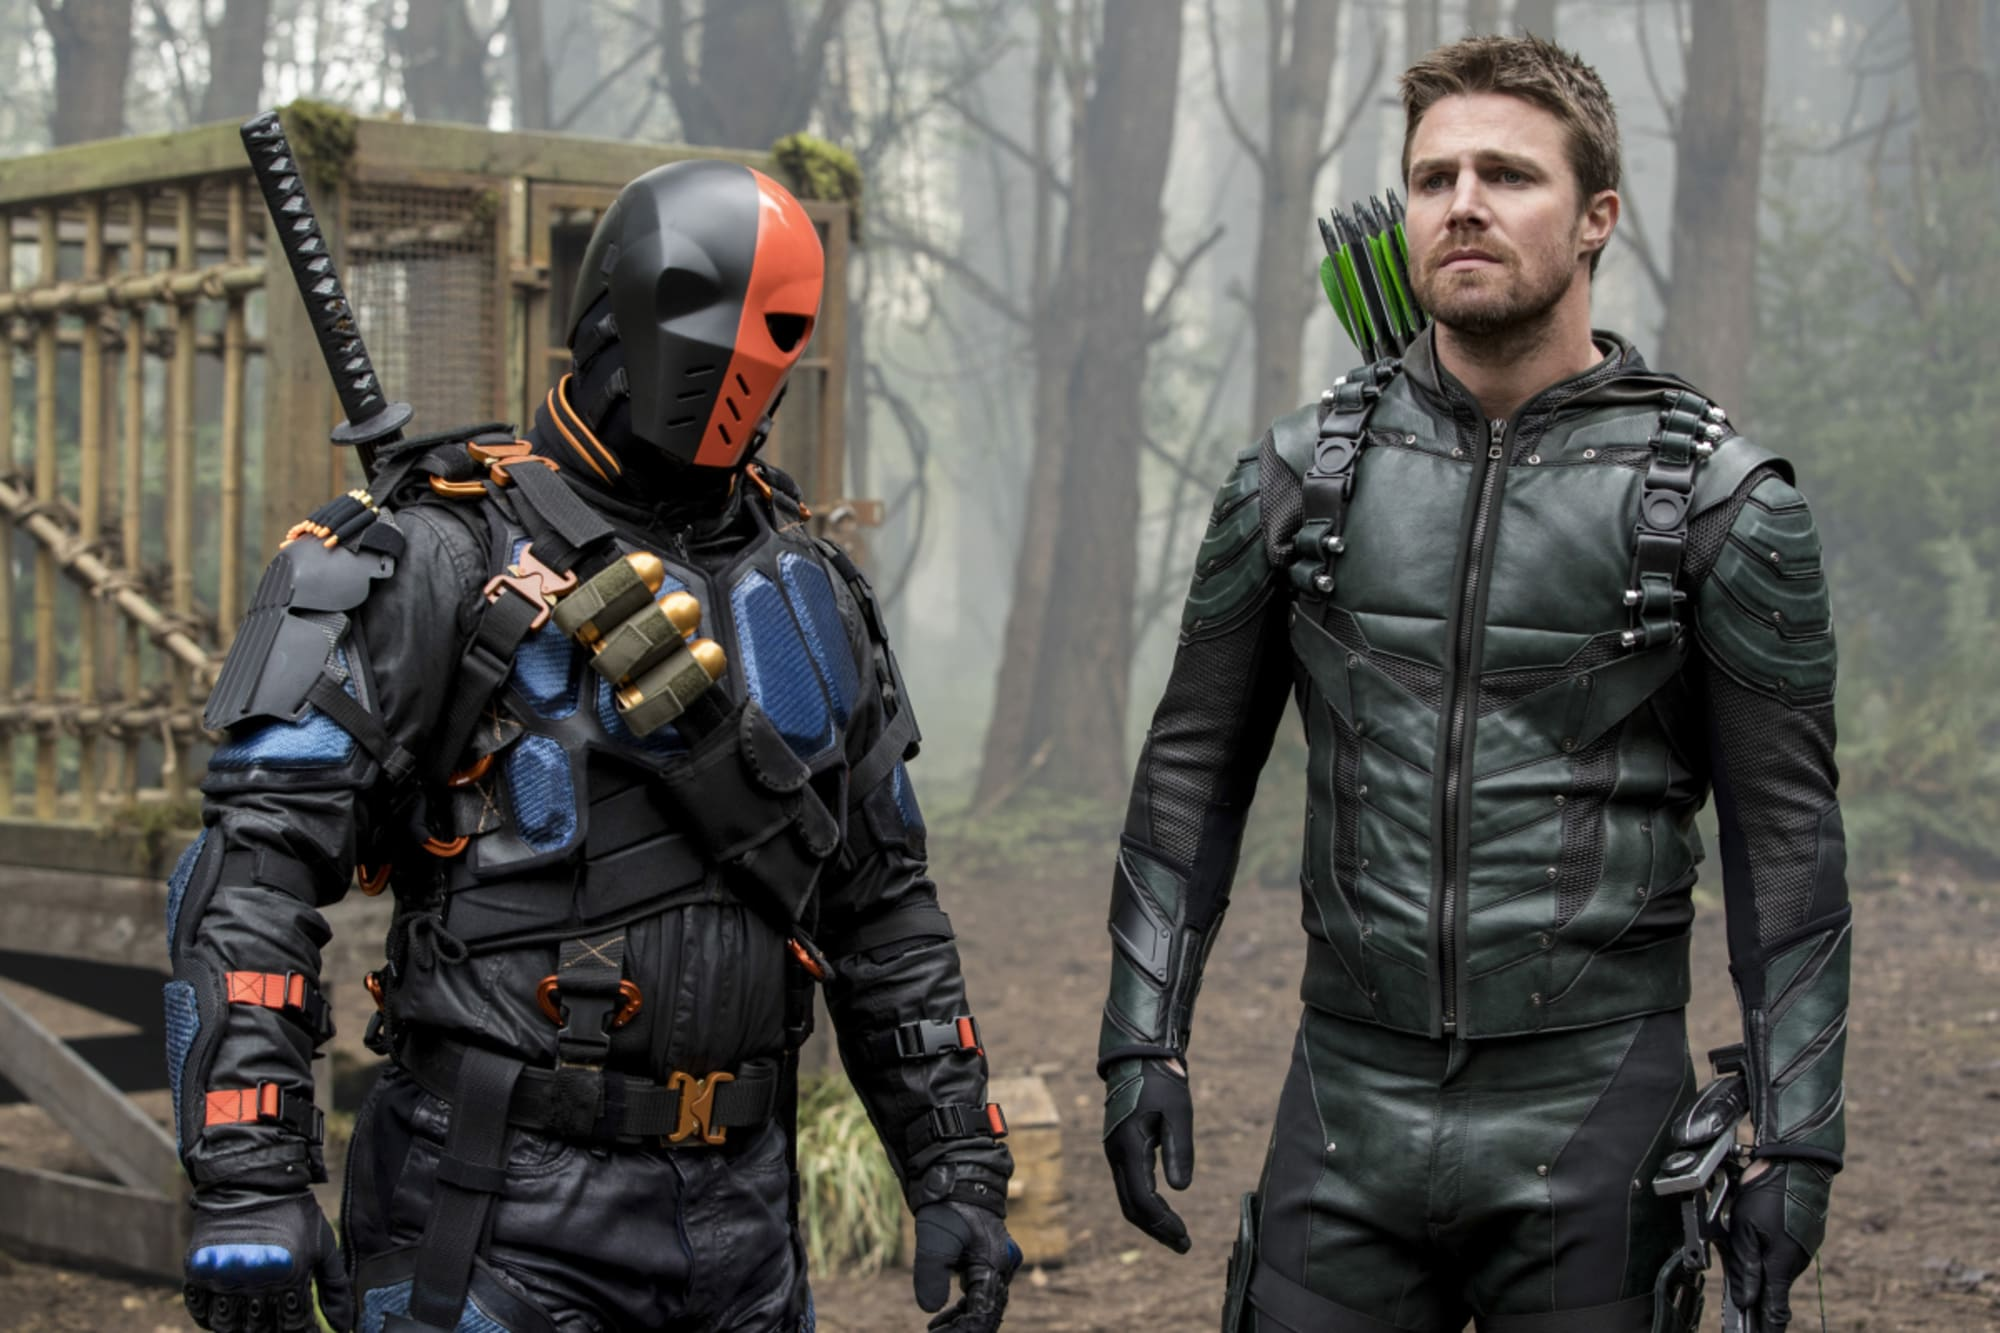 Deathstroke S1e1 Live Stream Watch Knights Dragons Online